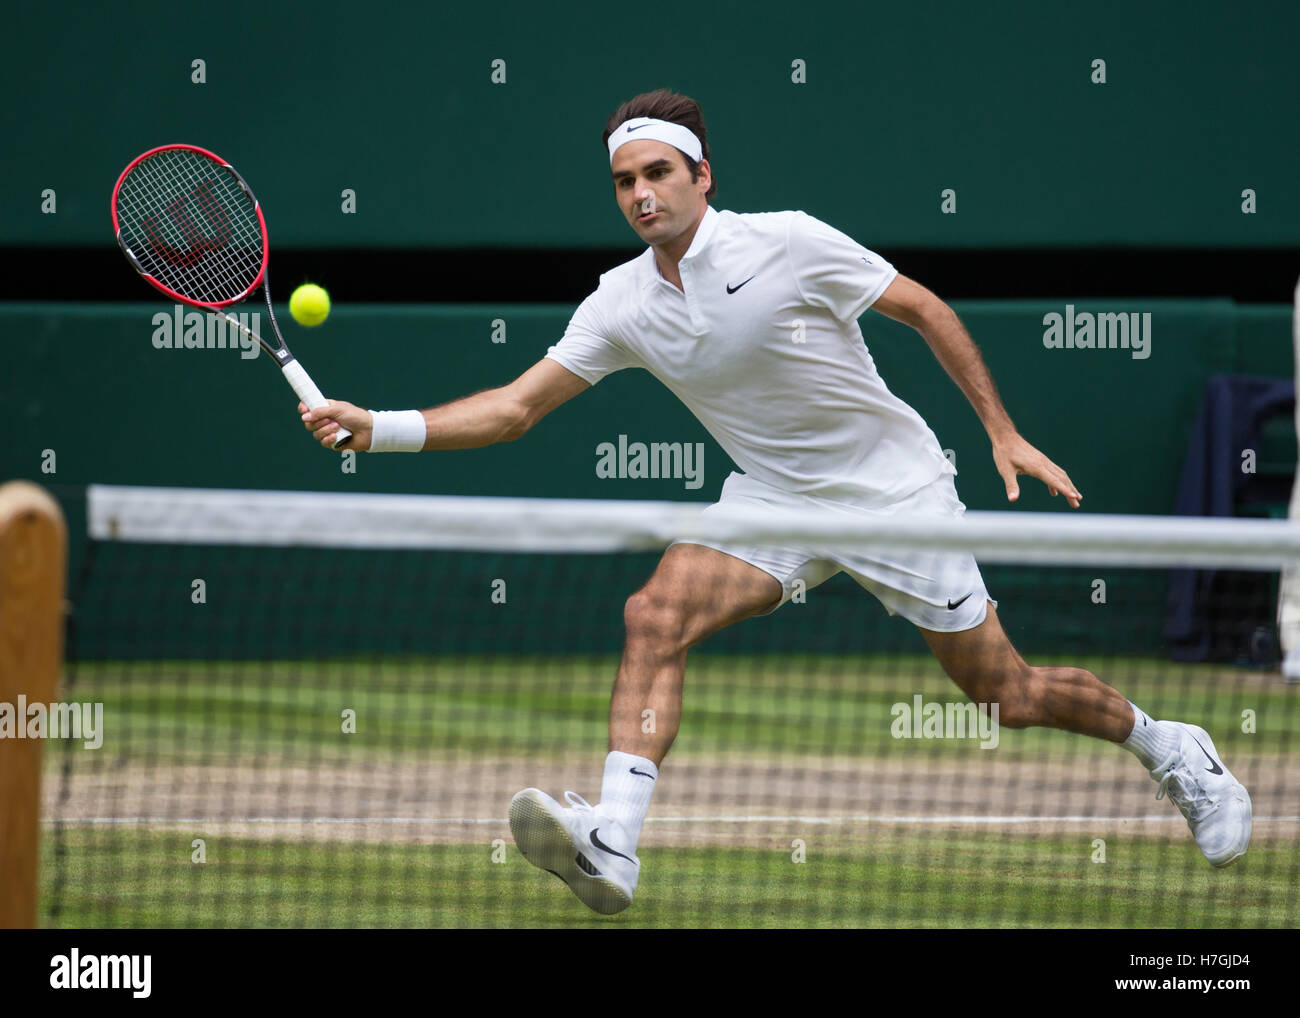 Roger Federer Volley High Resolution Stock Photography And Images Alamy